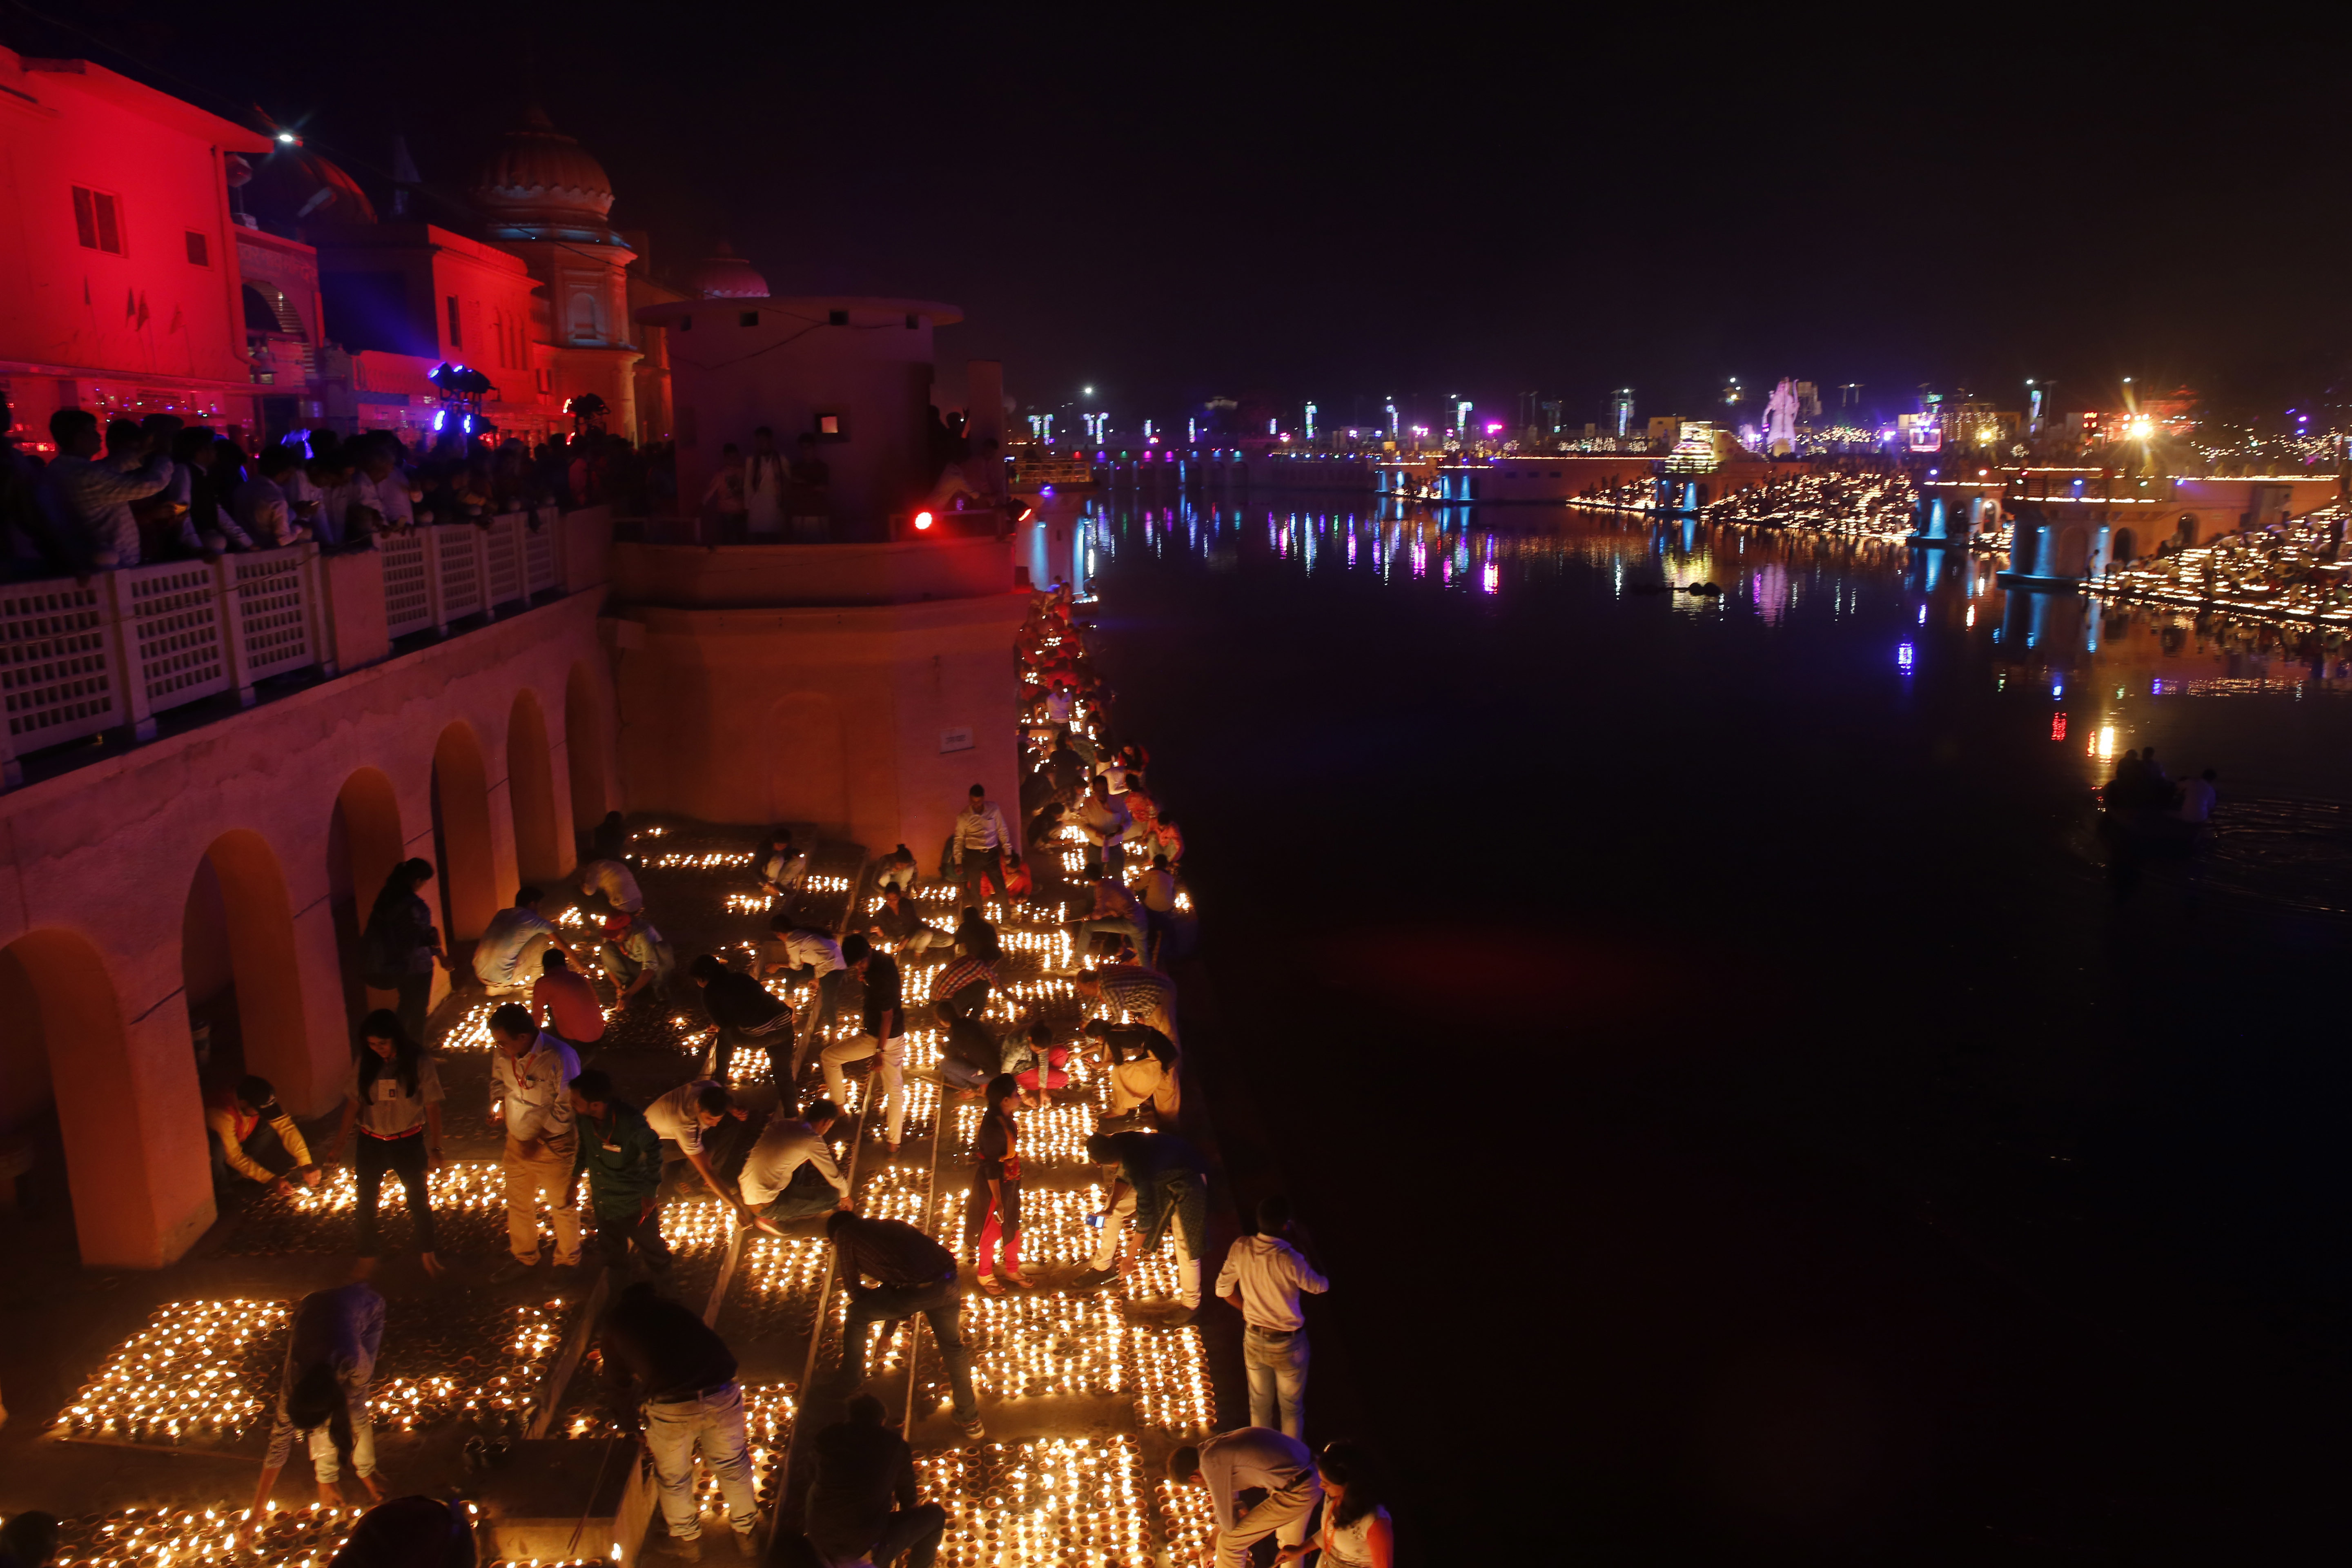 <div class='meta'><div class='origin-logo' data-origin='none'></div><span class='caption-text' data-credit=''>Indian city of Ayodhya went all out celebrating the Hindu Festival of Lights.</span></div>